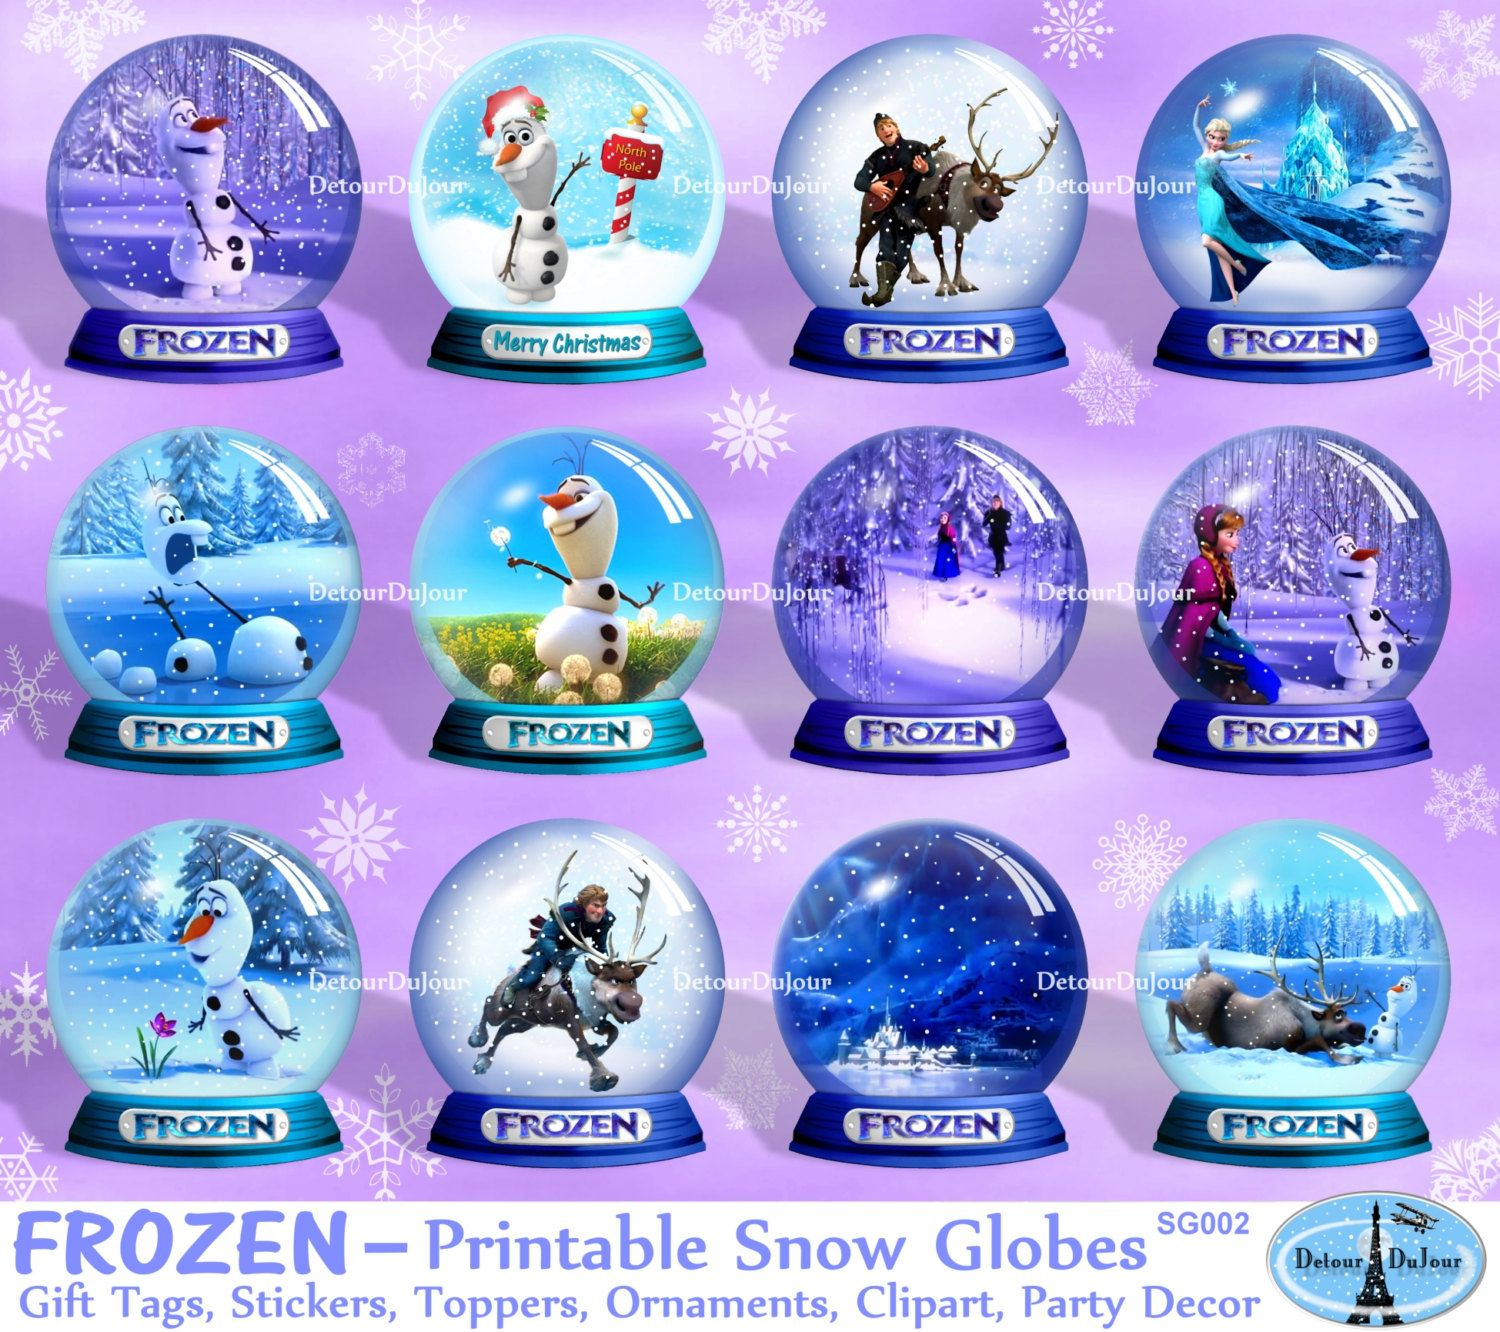 Aartz Frozen Gift Tags, Frozen Cupcake Toppers, Frozen Party Decorations,